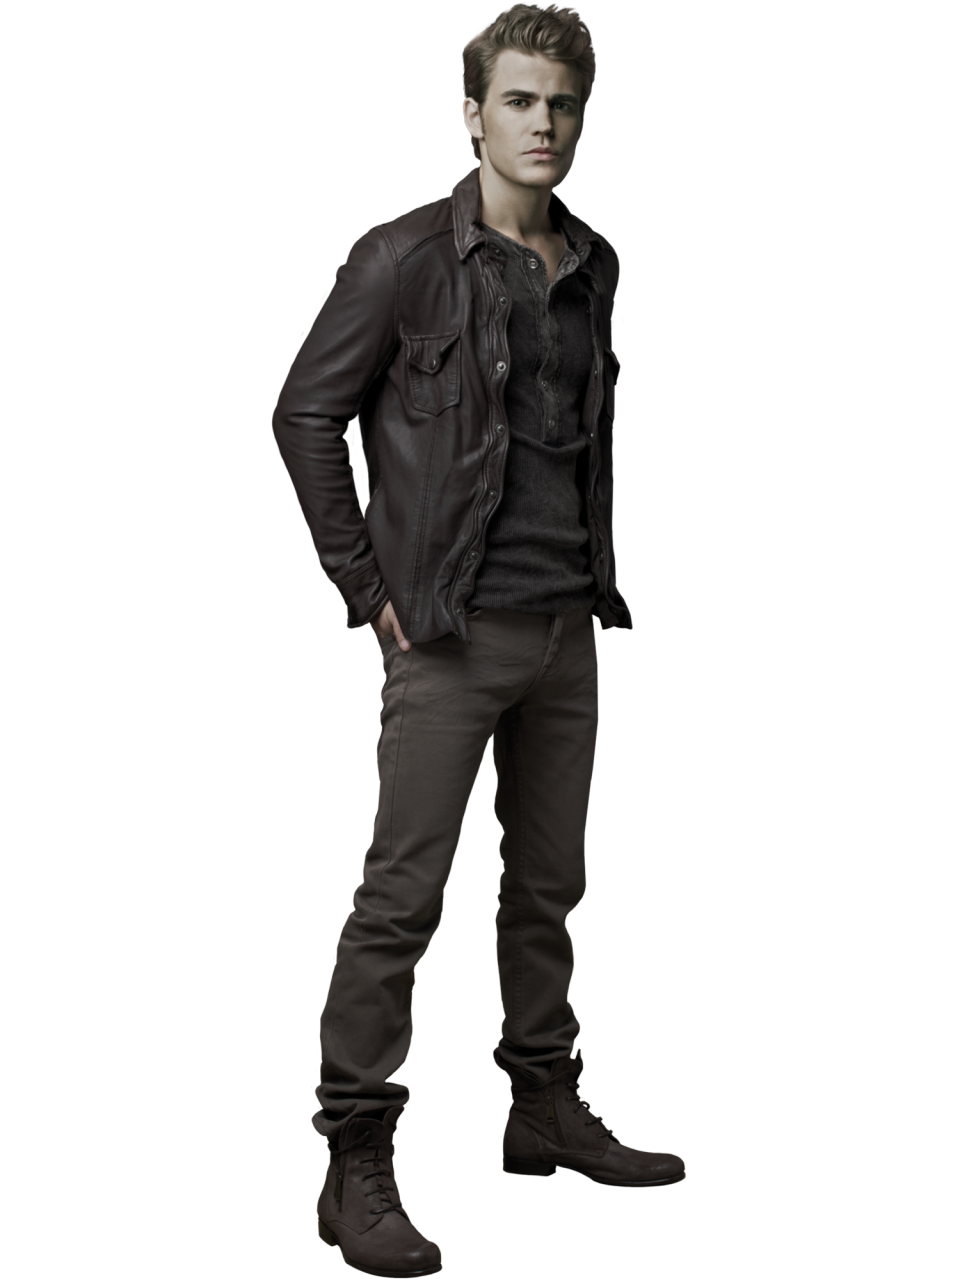 Vampire PNG Image